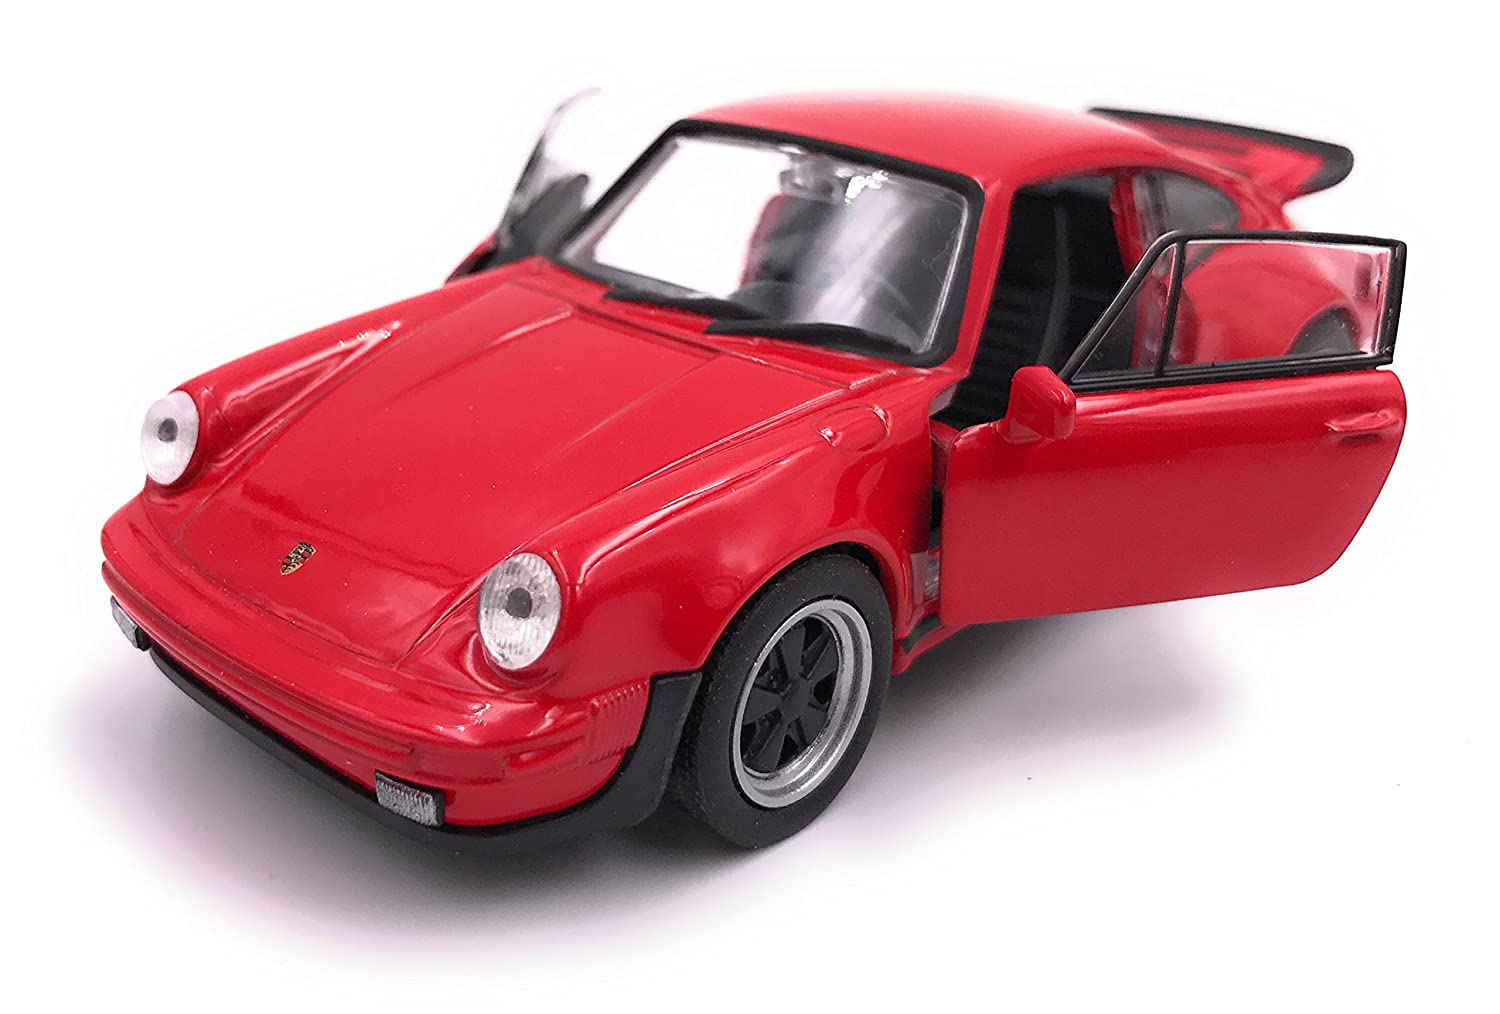 39 rouge 34-1 Welly Porsche 911 Turbo 930 1975 mod/èle de licence de voiture produit 1